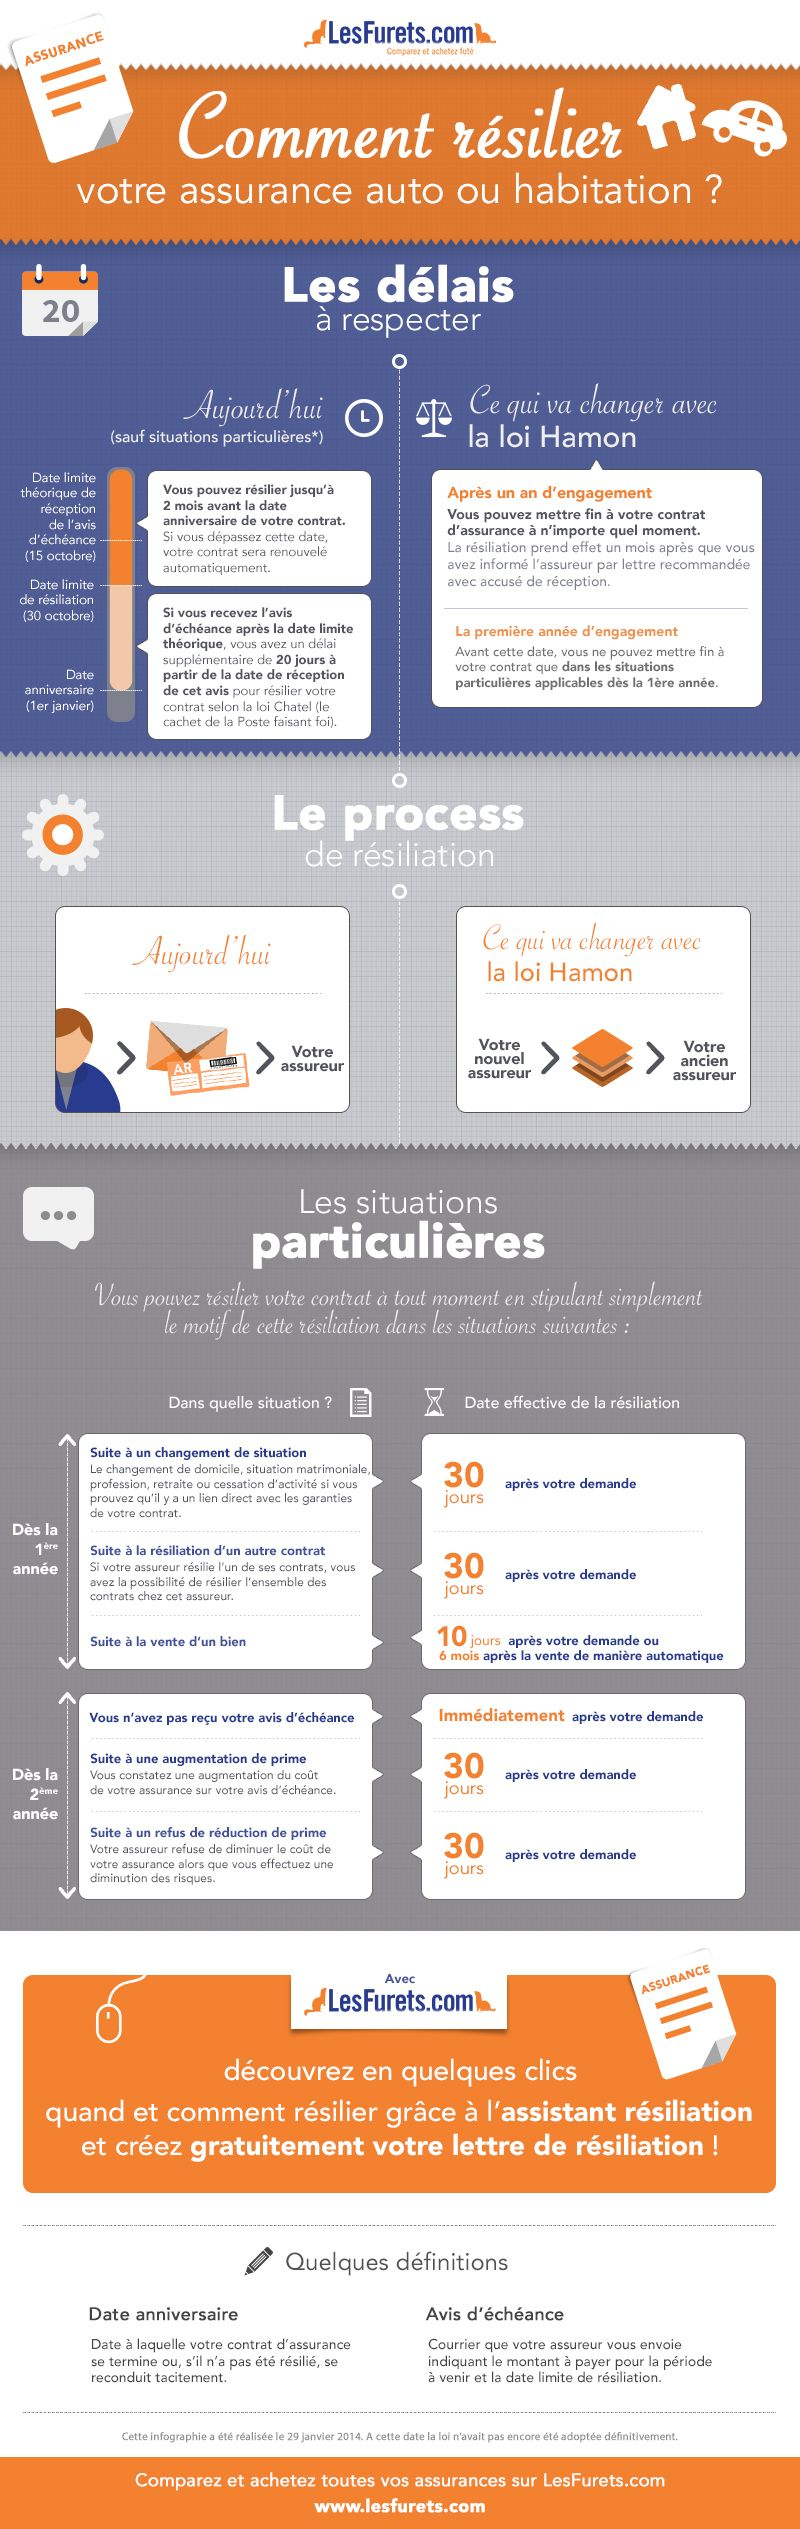 infographie sur comment r silier votre assurance auto ou habitation actualit s sport auto. Black Bedroom Furniture Sets. Home Design Ideas